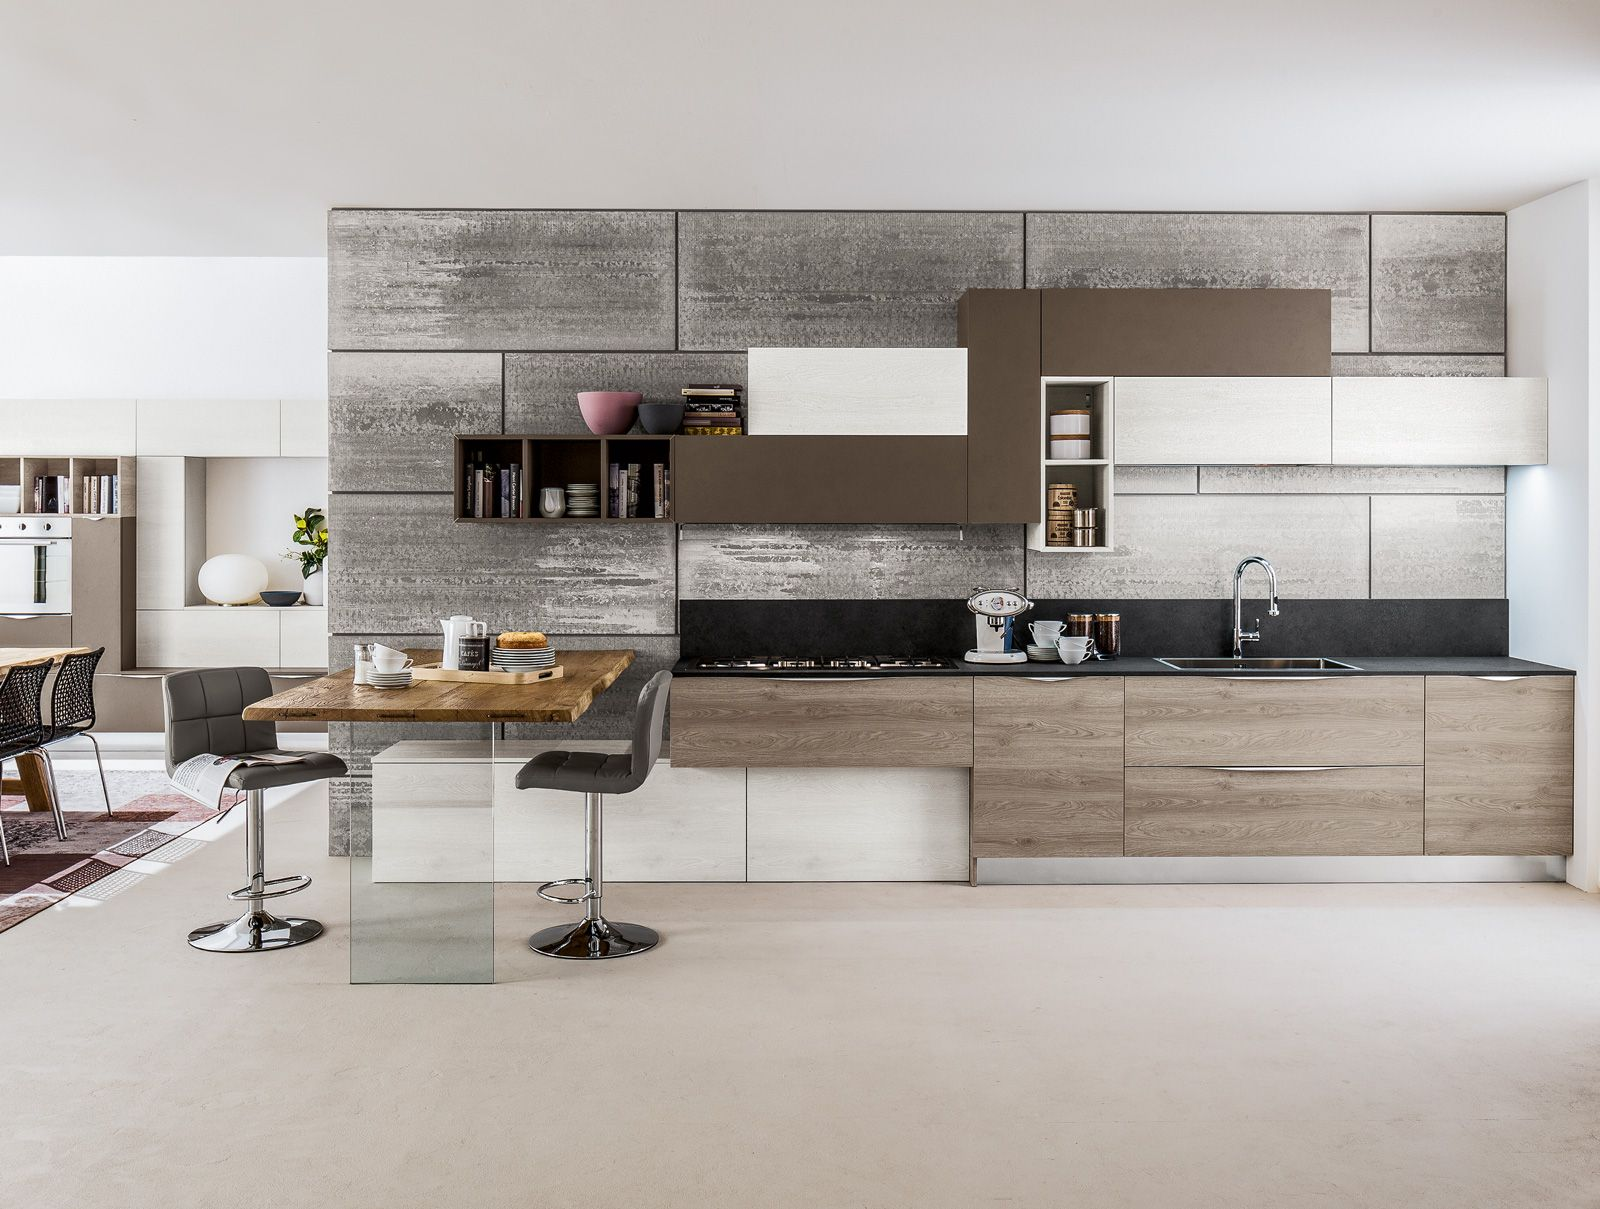 Cucine: tutto su una parete (o quasi) | Kitchen design, Kitchens ...